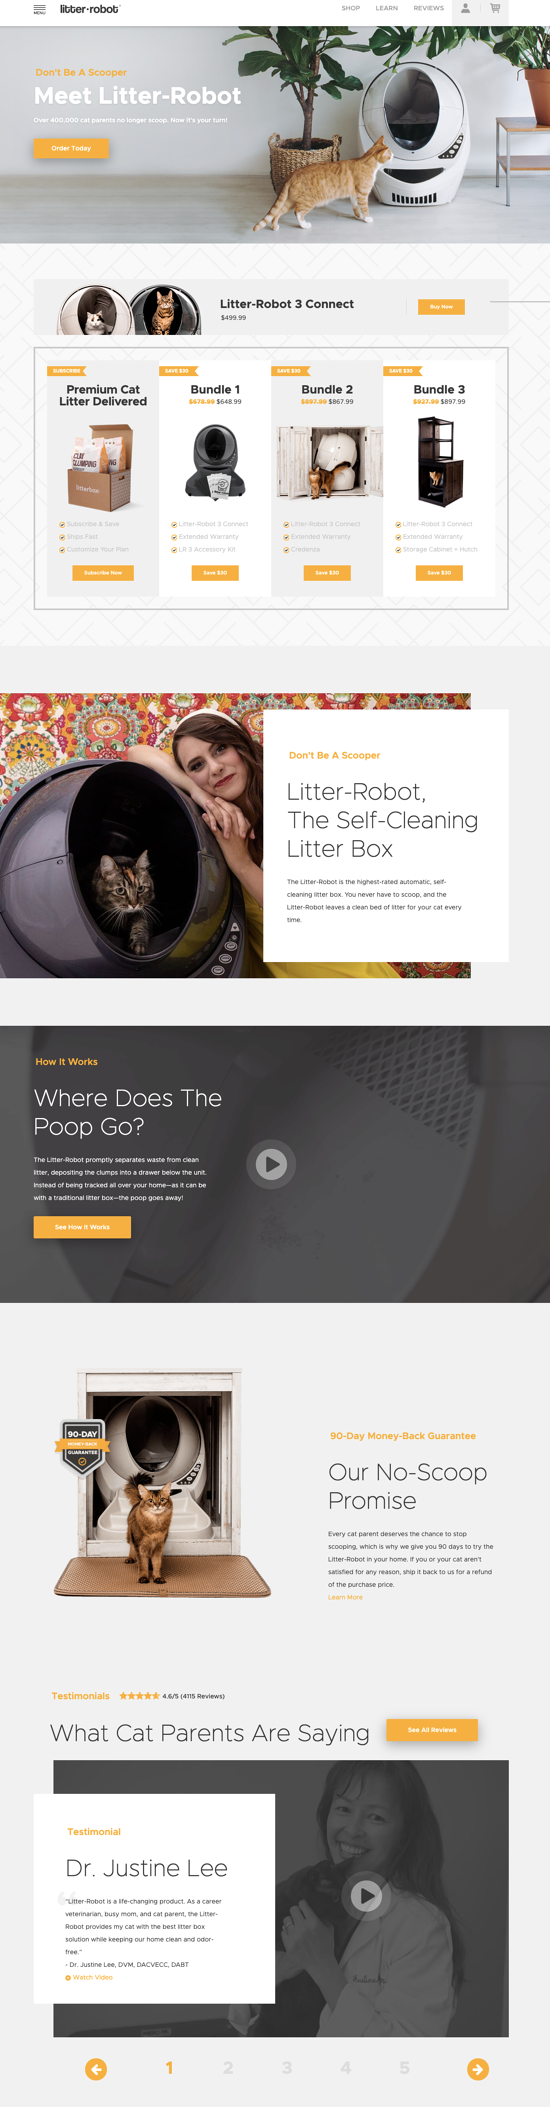 screencapture-litter-robot